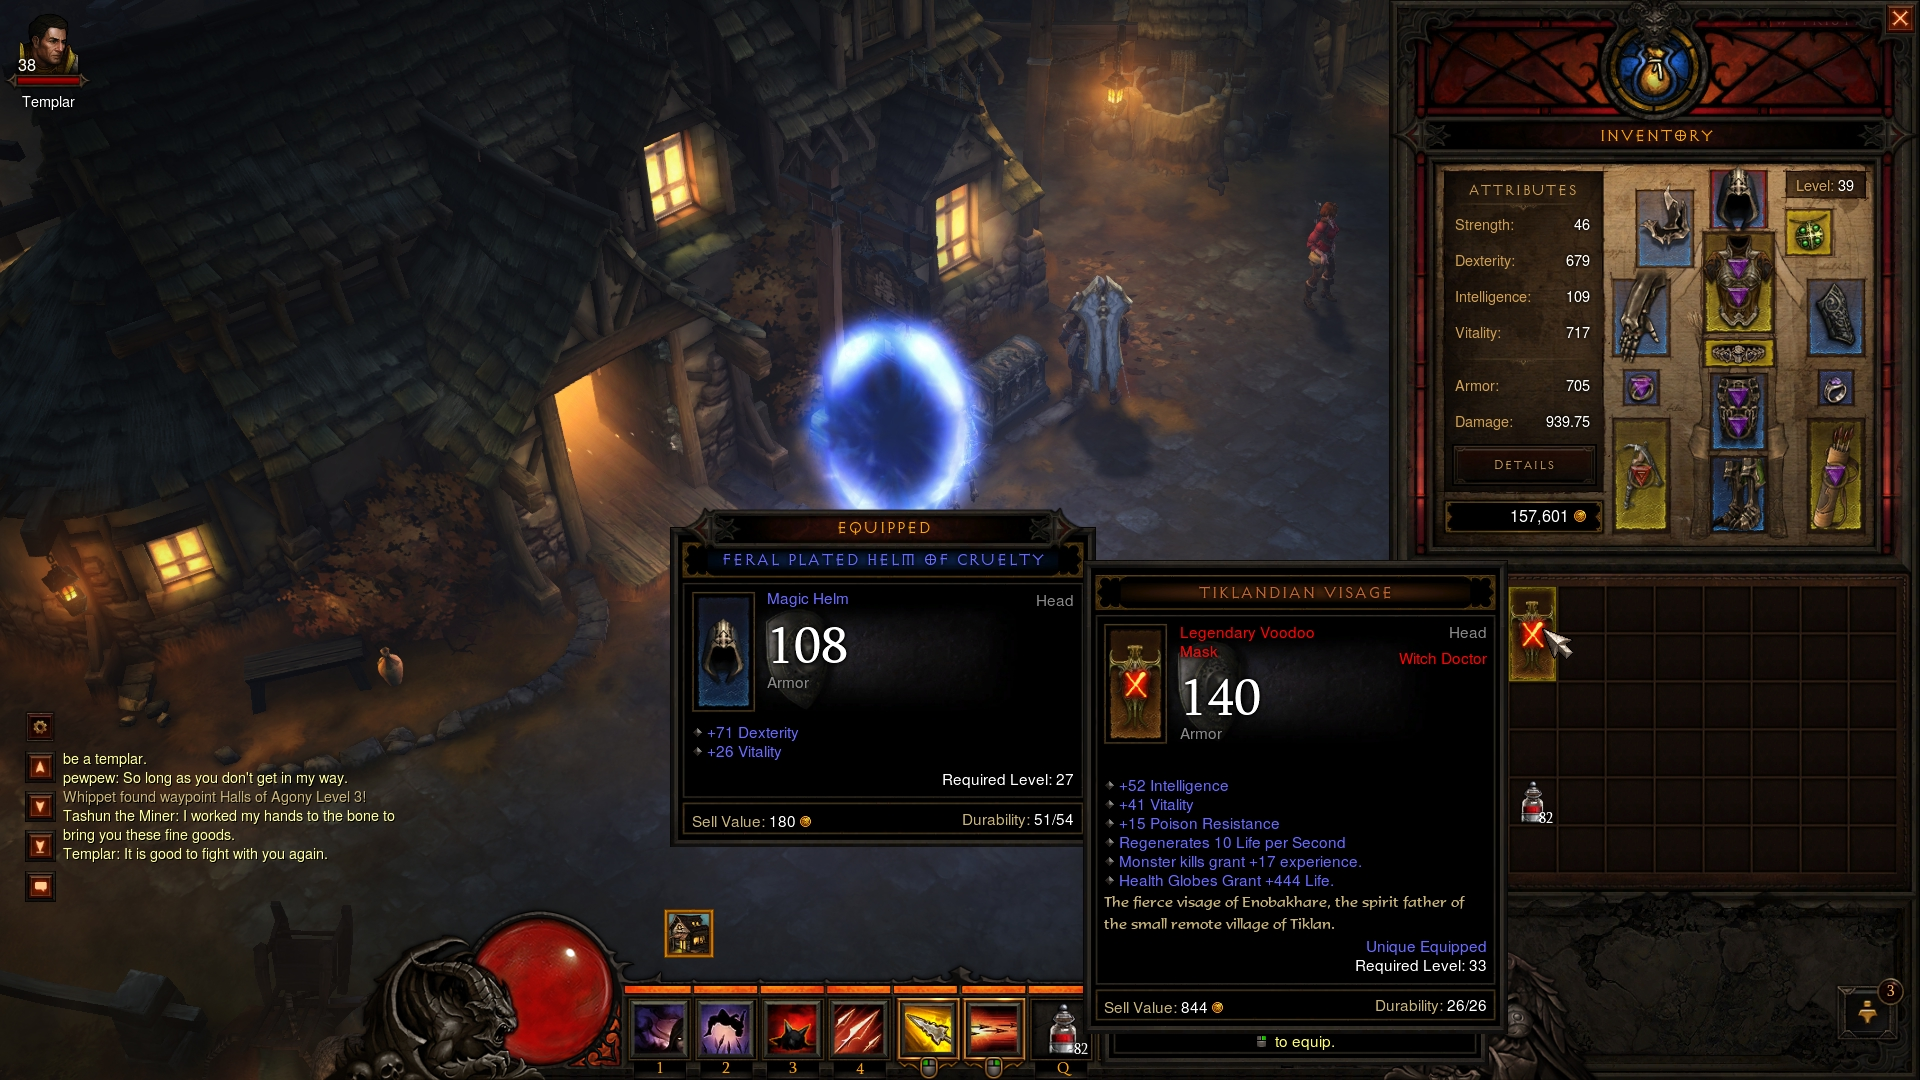 ratatapa games dont peculiar know what think this just show post trading your diablo legendary